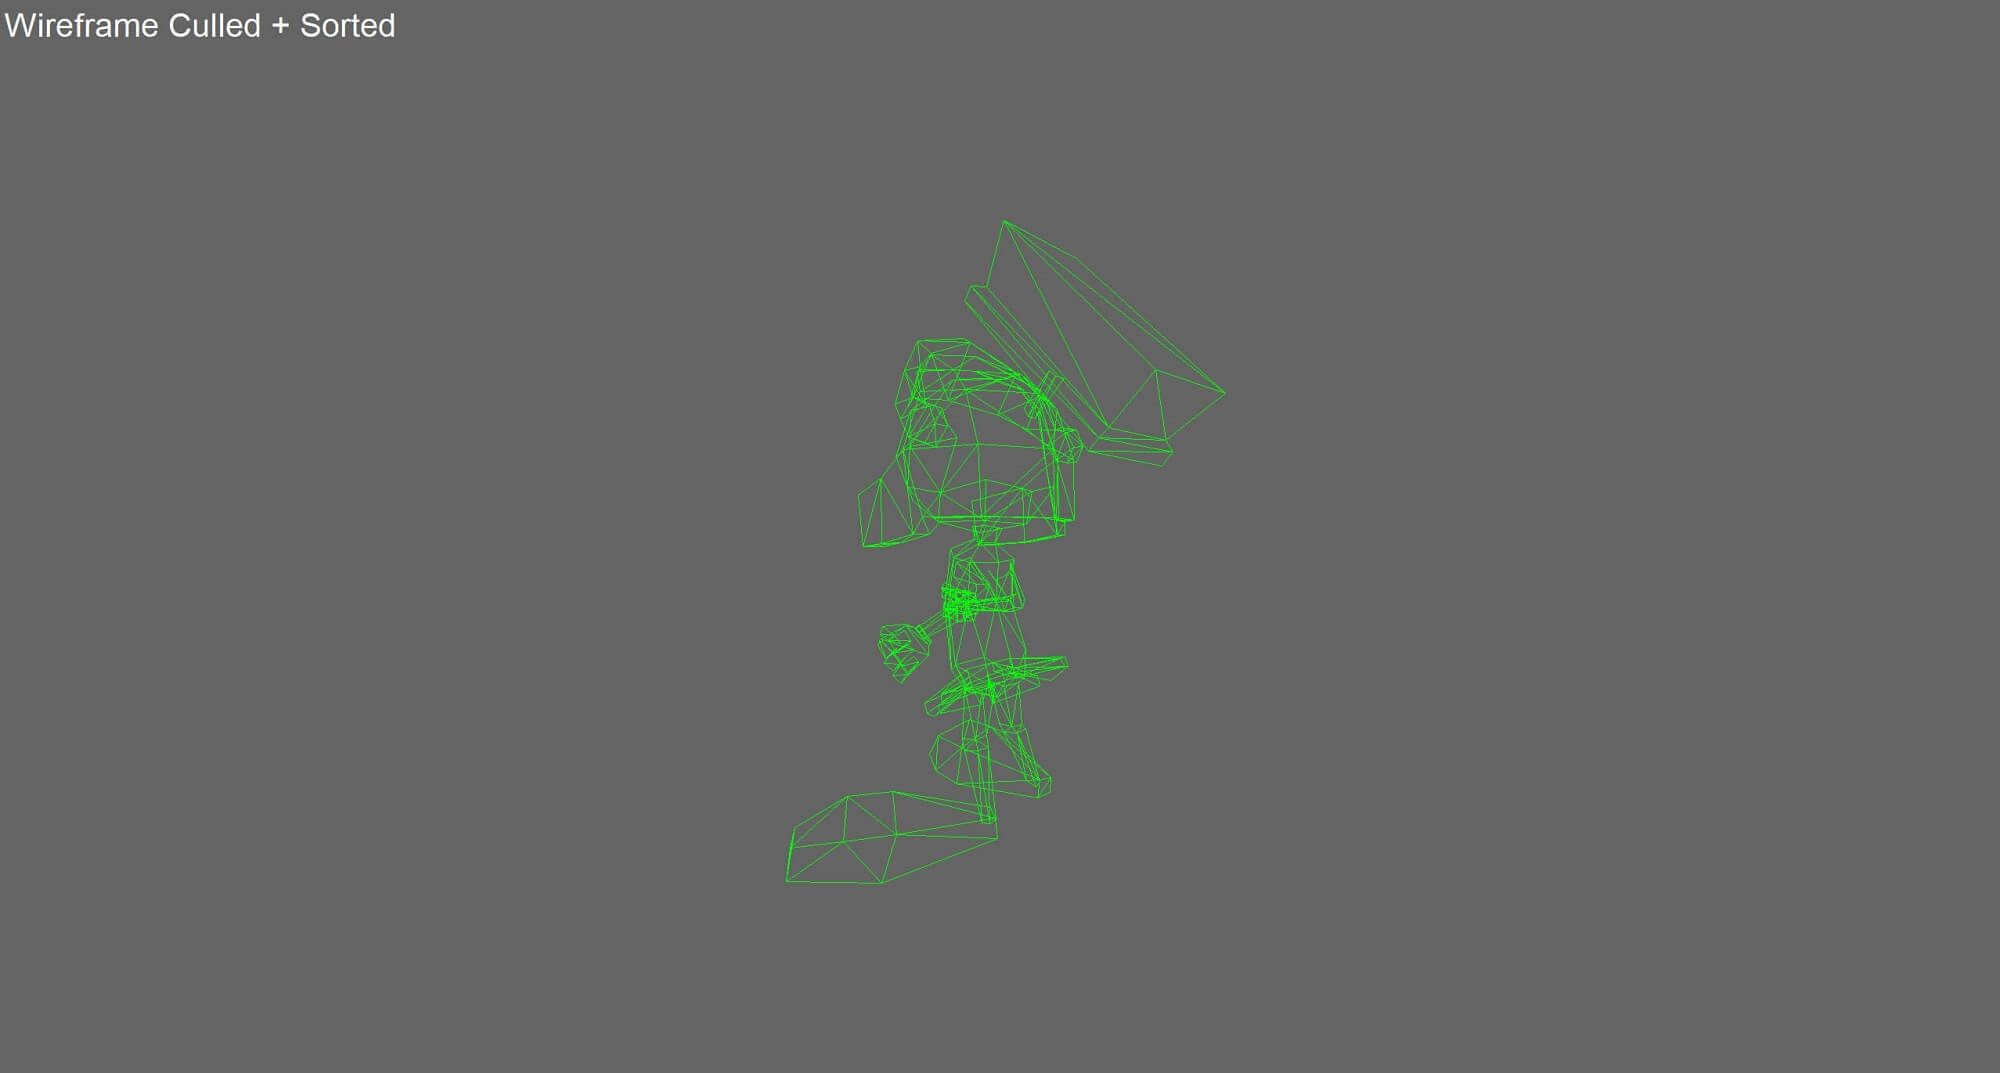 An animated character, with large feet and dressed as a comical Roman legionary, drawn in green geometric lines